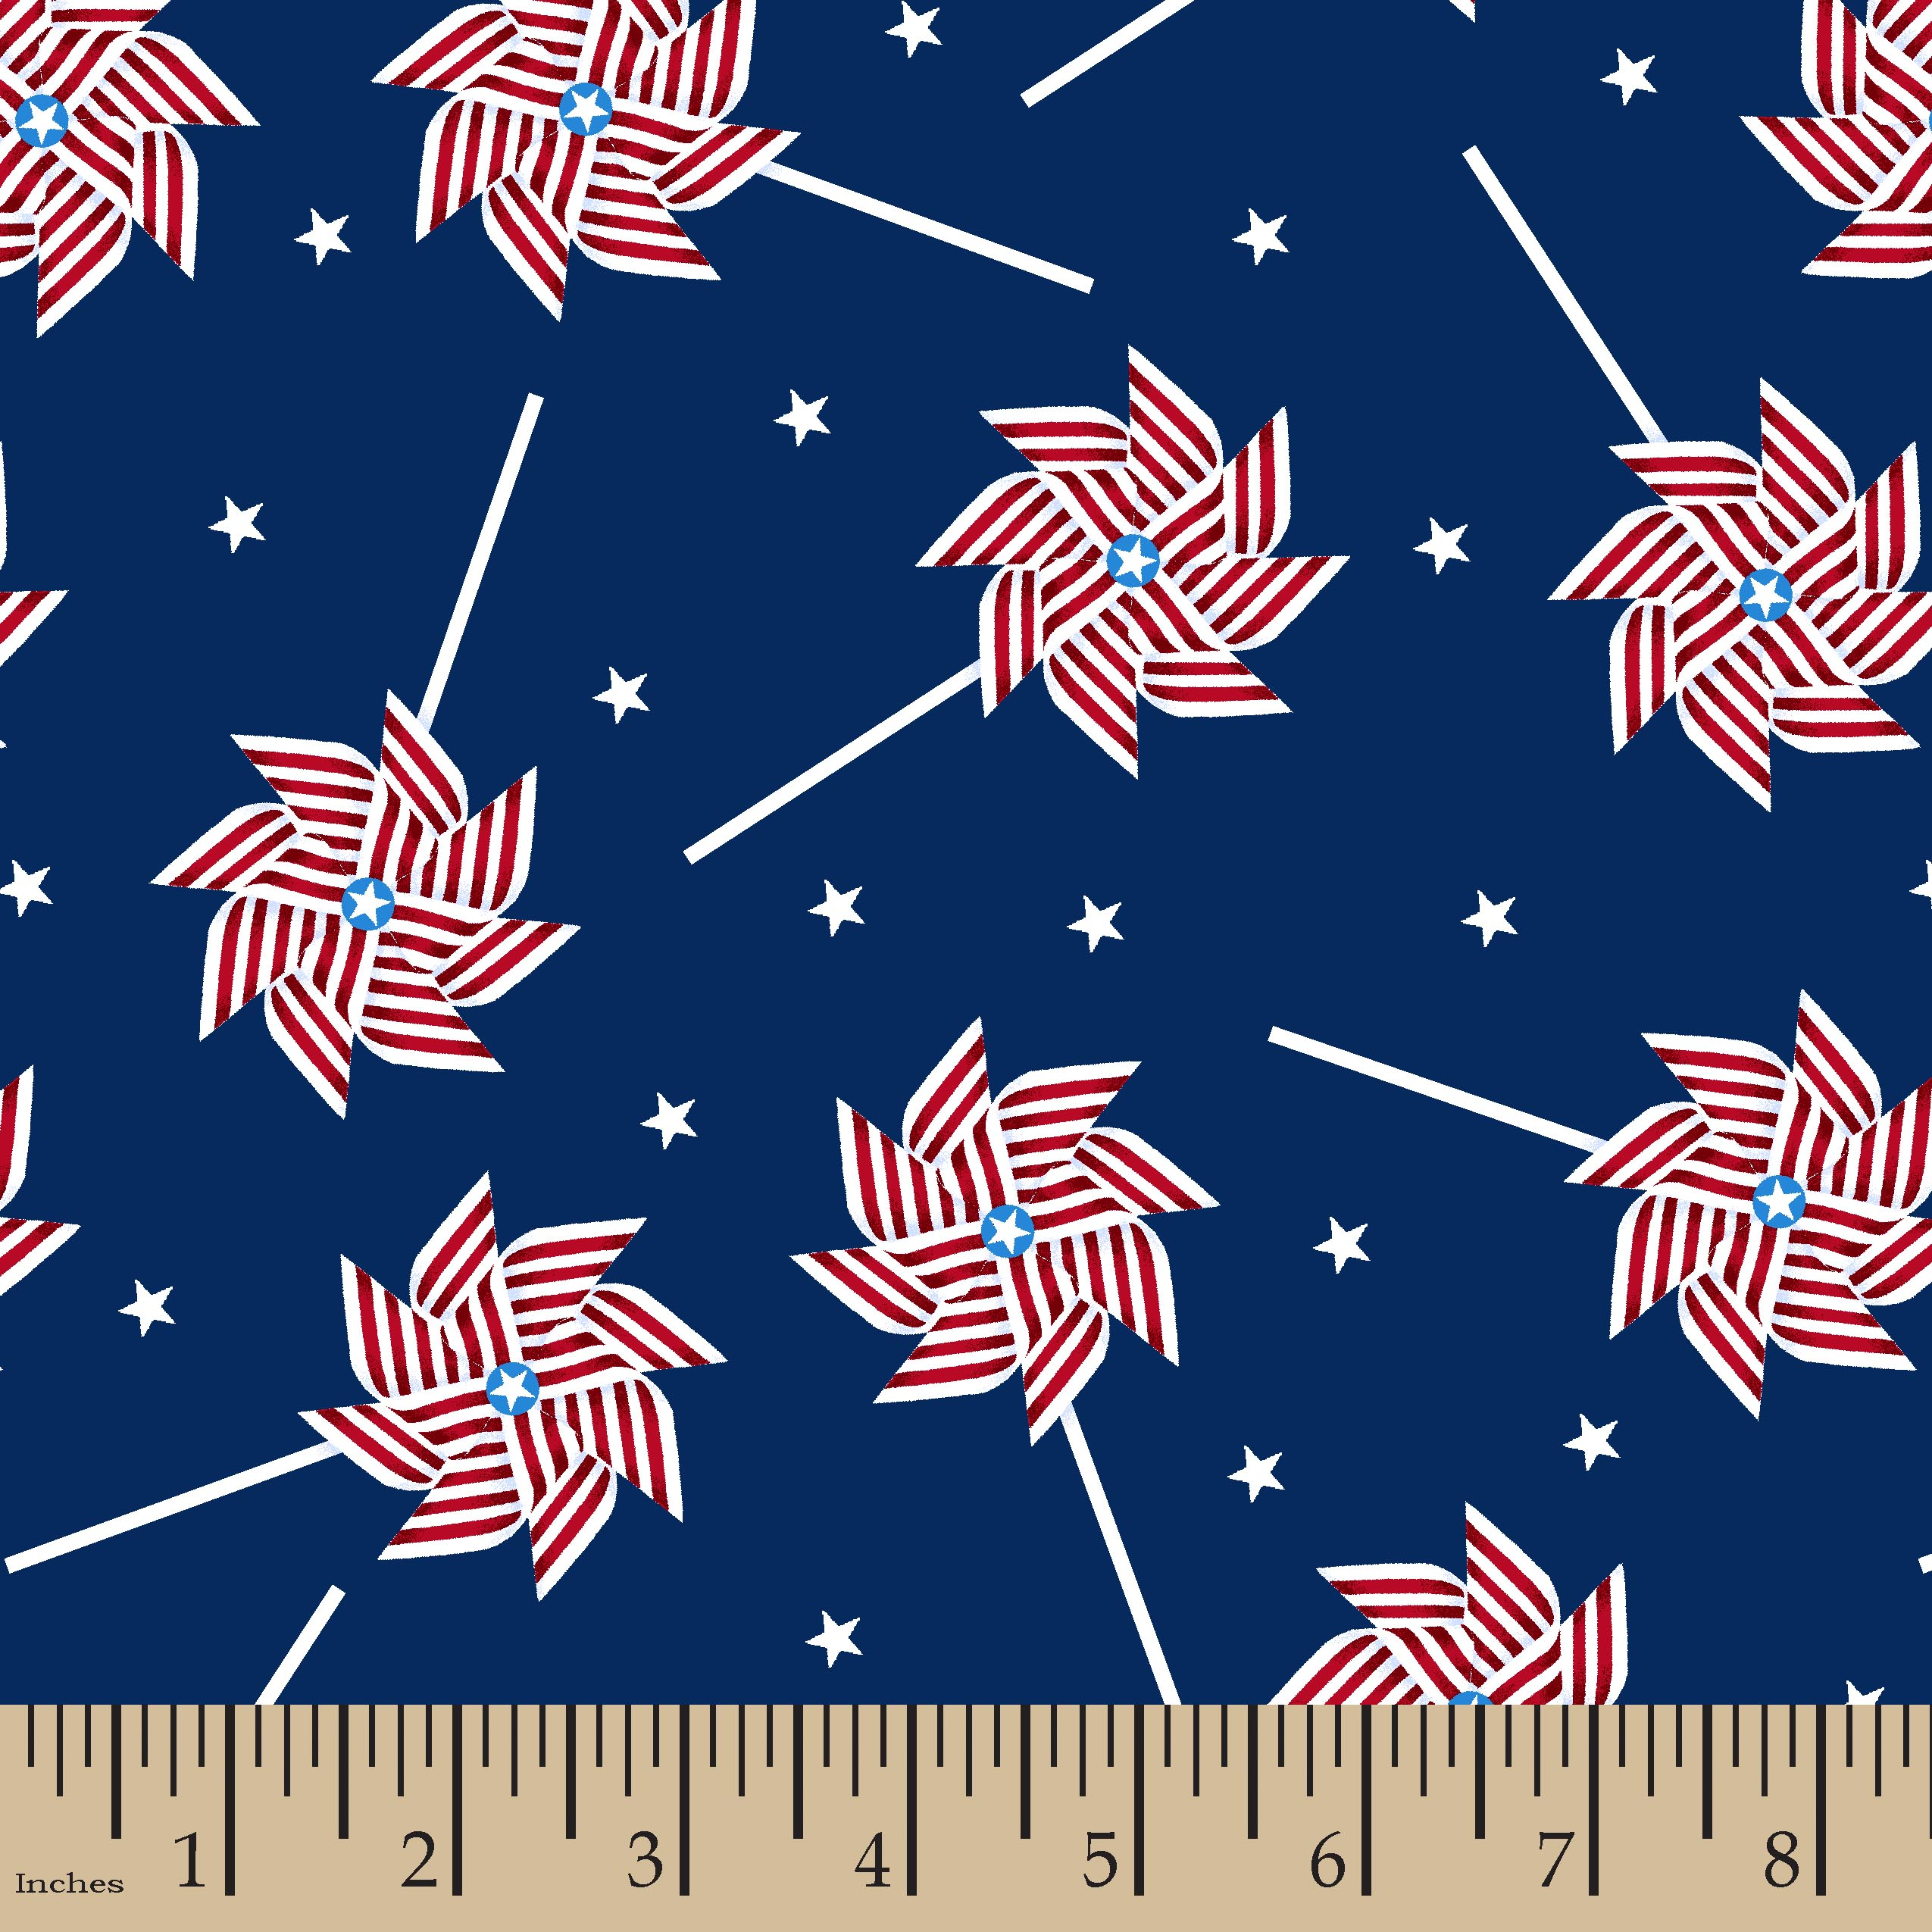 Patriotic Pinwheel Fabric by the Yard